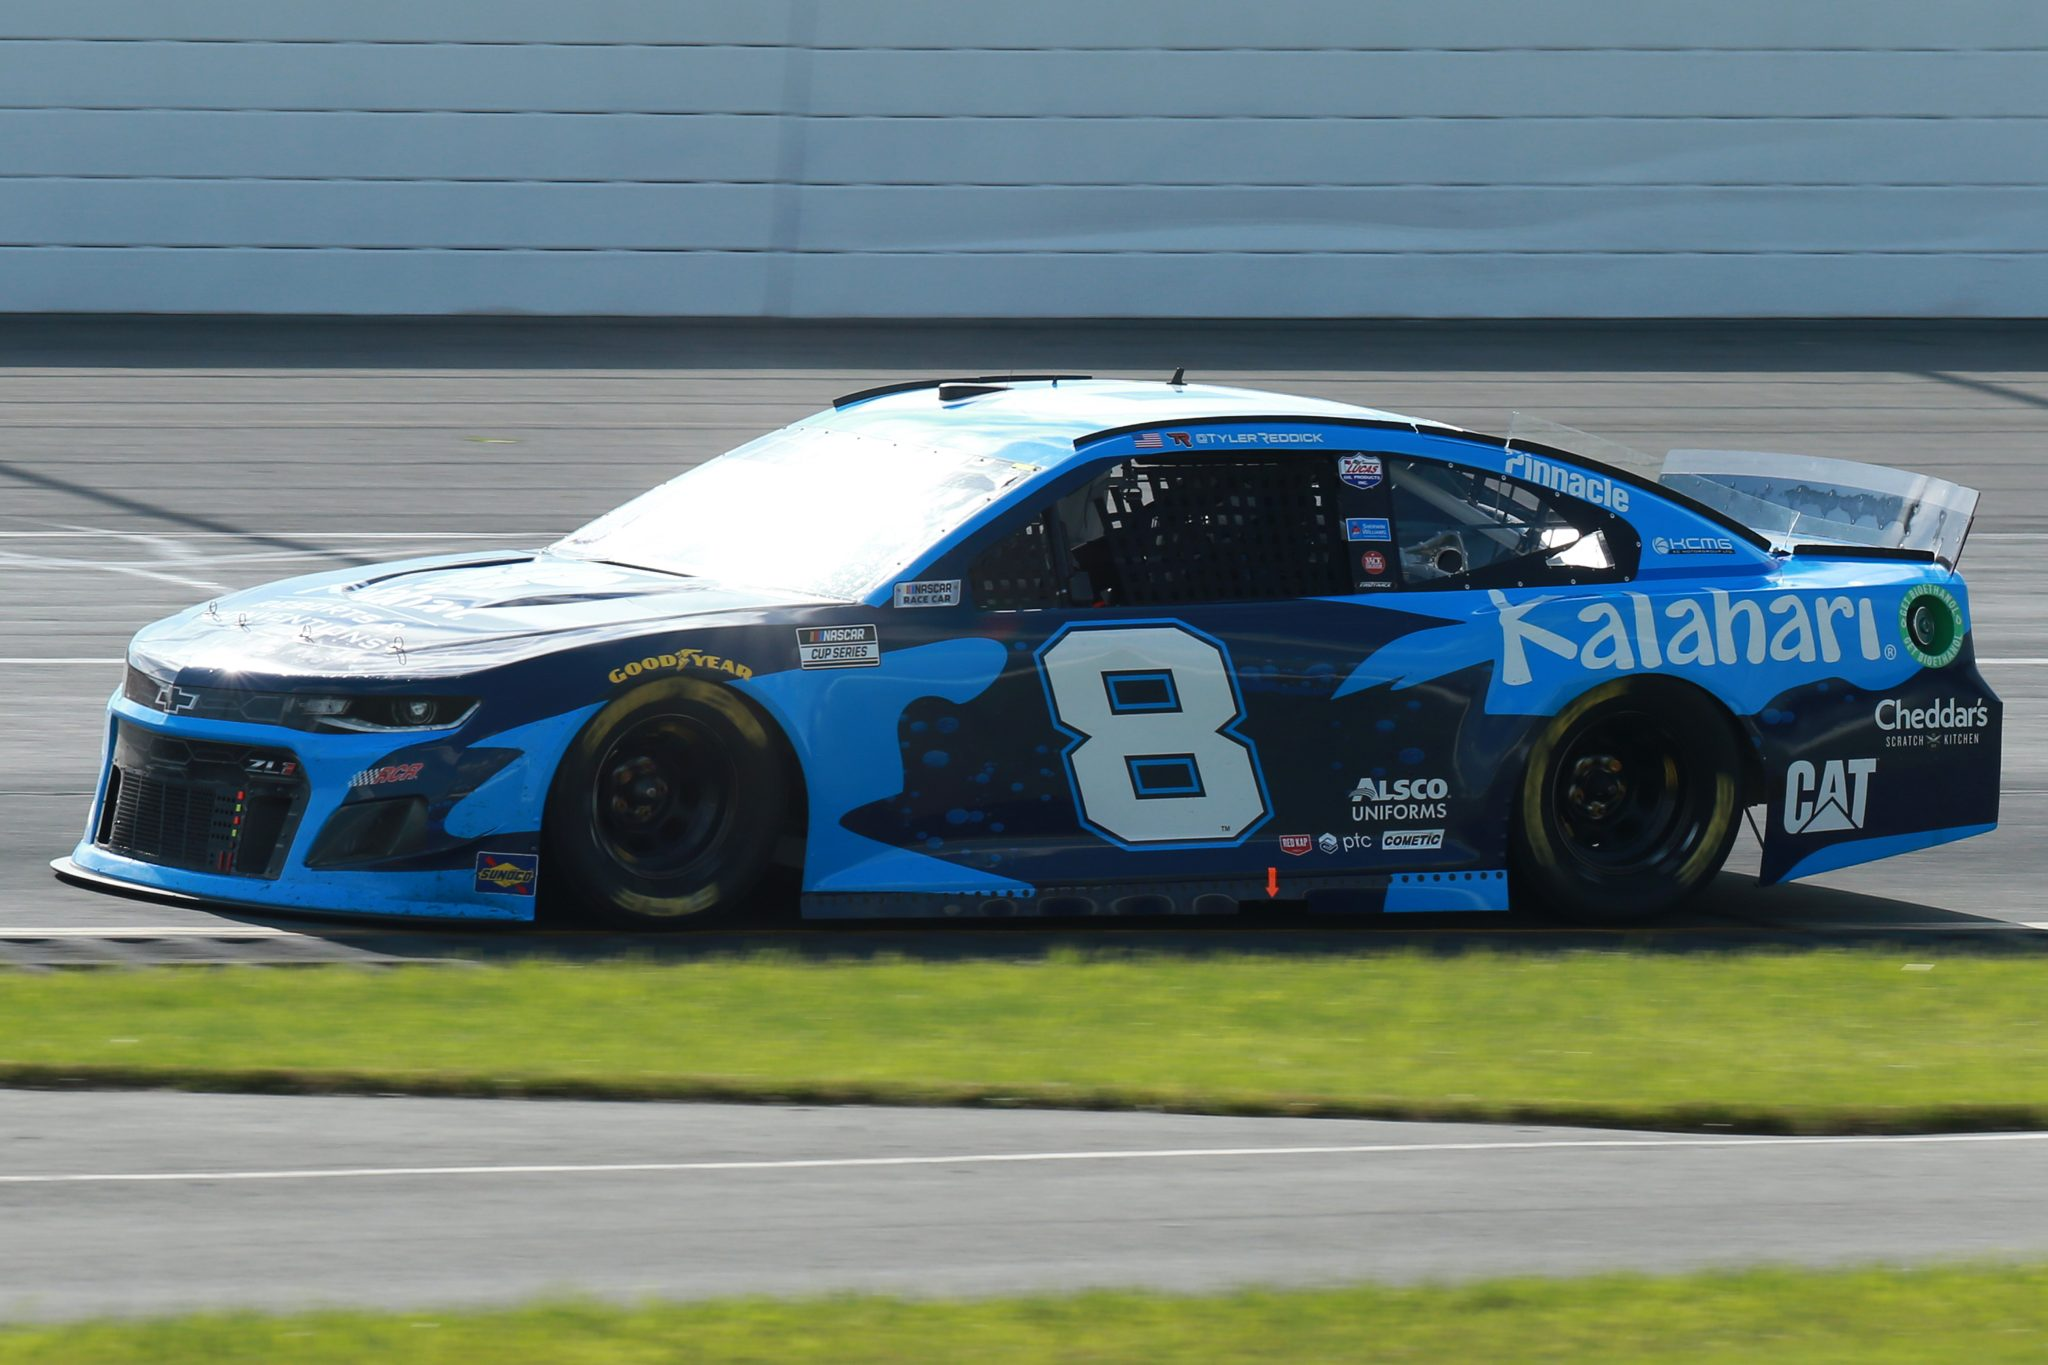 LONG POND, PENNSYLVANIA - JUNE 27: Tyler Reddick, driver of the #8 Kalahari Resorts & Conventions Chevrolet, drives during the NASCAR Cup Series Explore the Pocono Mountains 350 at Pocono Raceway on June 27, 2021 in Long Pond, Pennsylvania. (Photo by Sean Gardner/Getty Images) | Getty Images